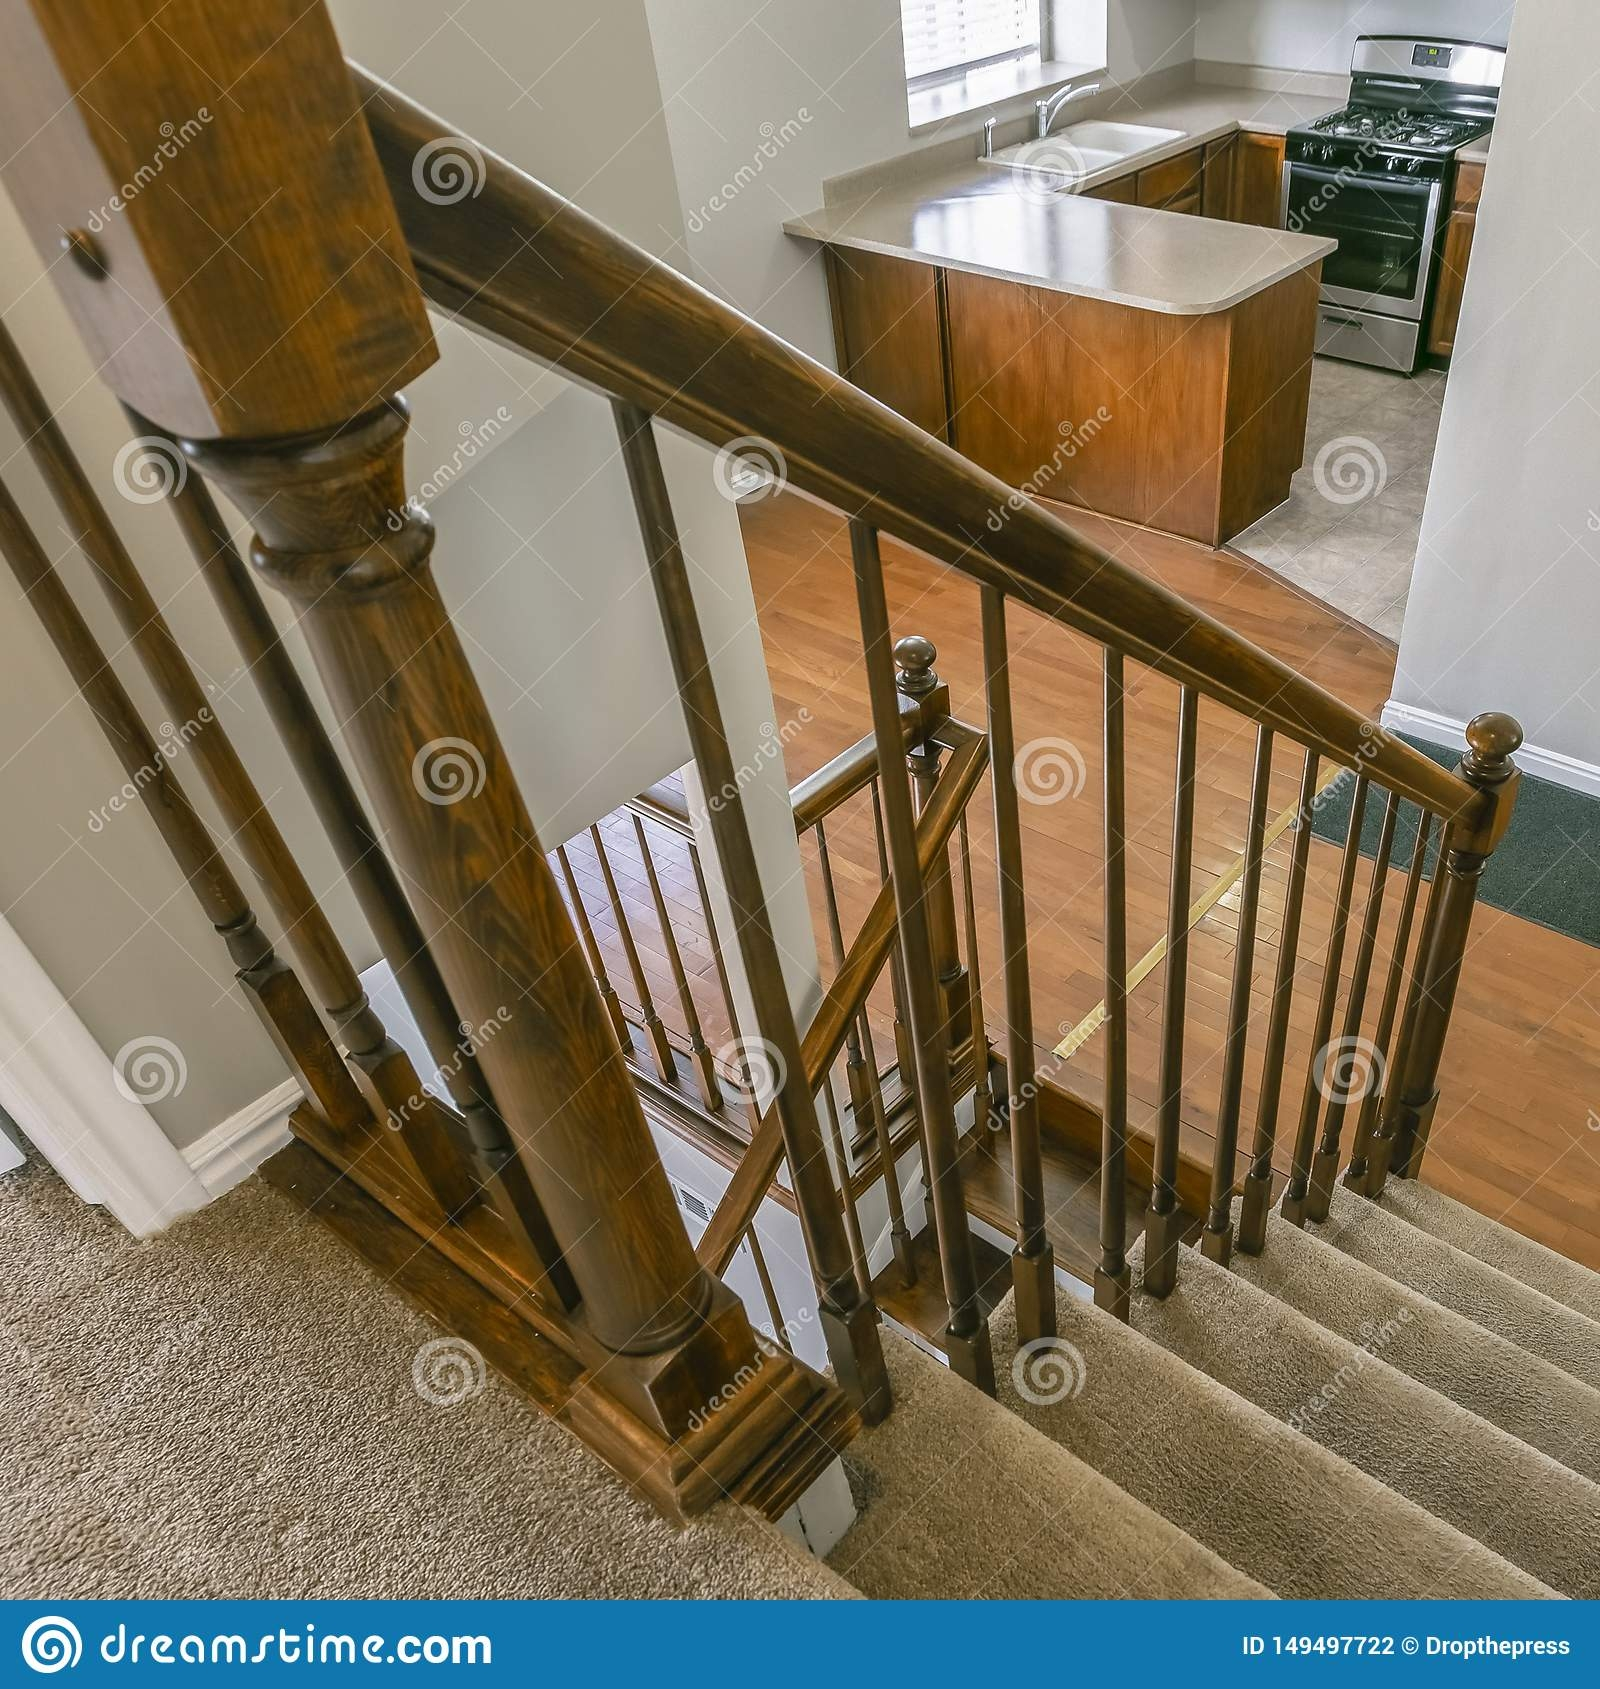 Square Staircase Inside A House Overlooking The Kitchen And An | Square Handrail For Stairs | Balustrade | Outdoor | Hand Rail | Low Cost | Residential